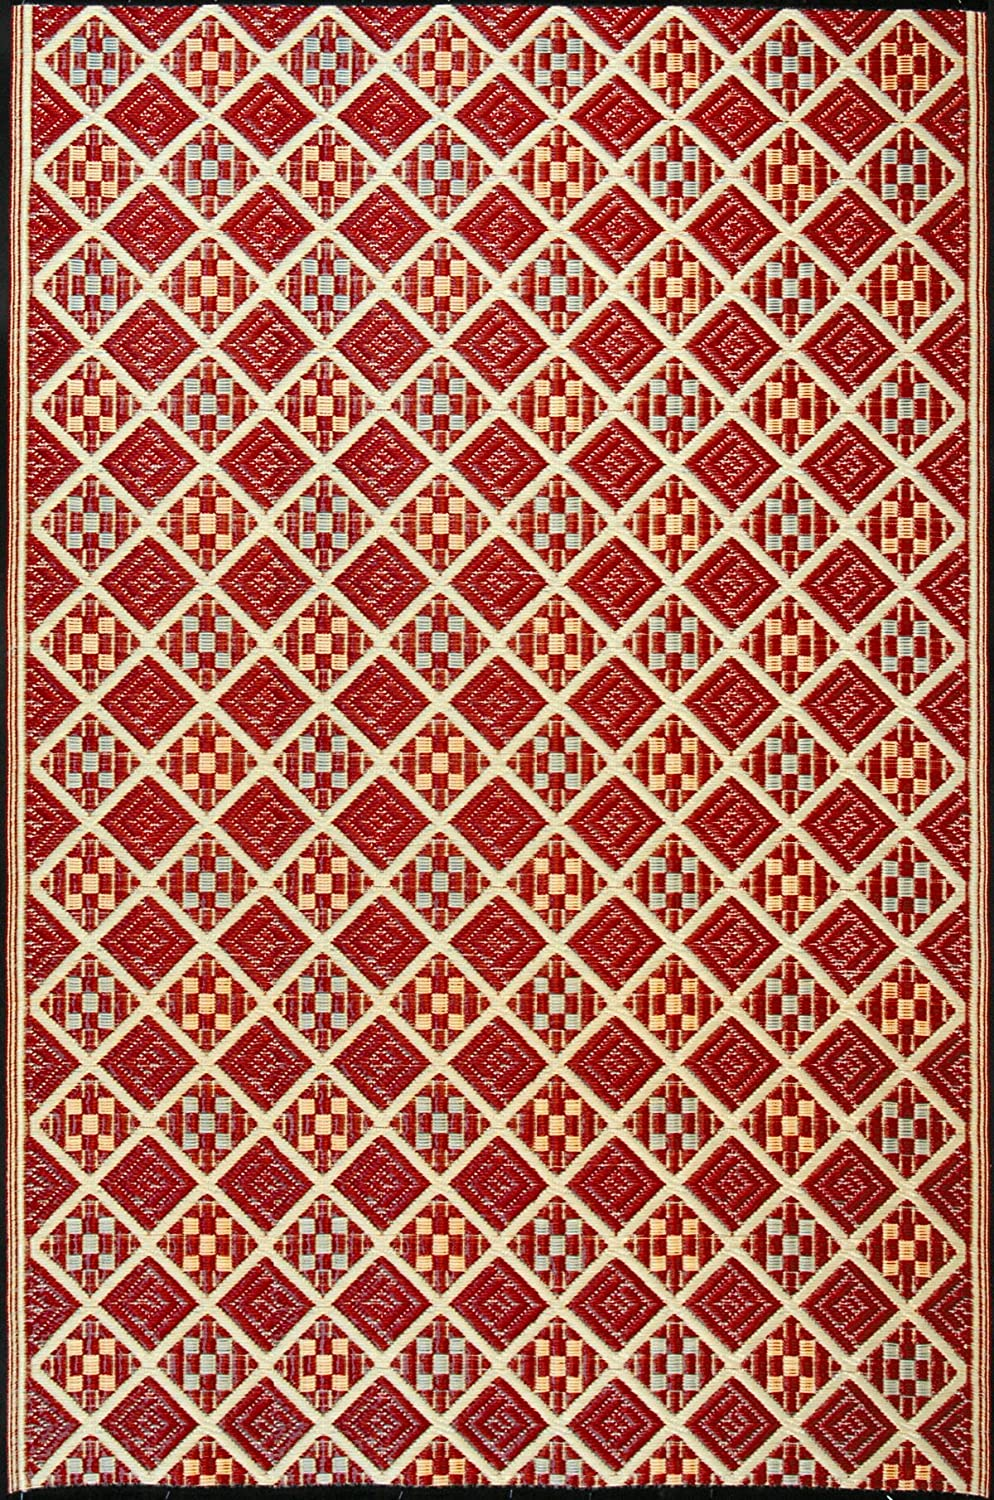 Mad Mats Scotch Indoor Outdoor Floor Mat, 6 by 9-Feet, Cranberry